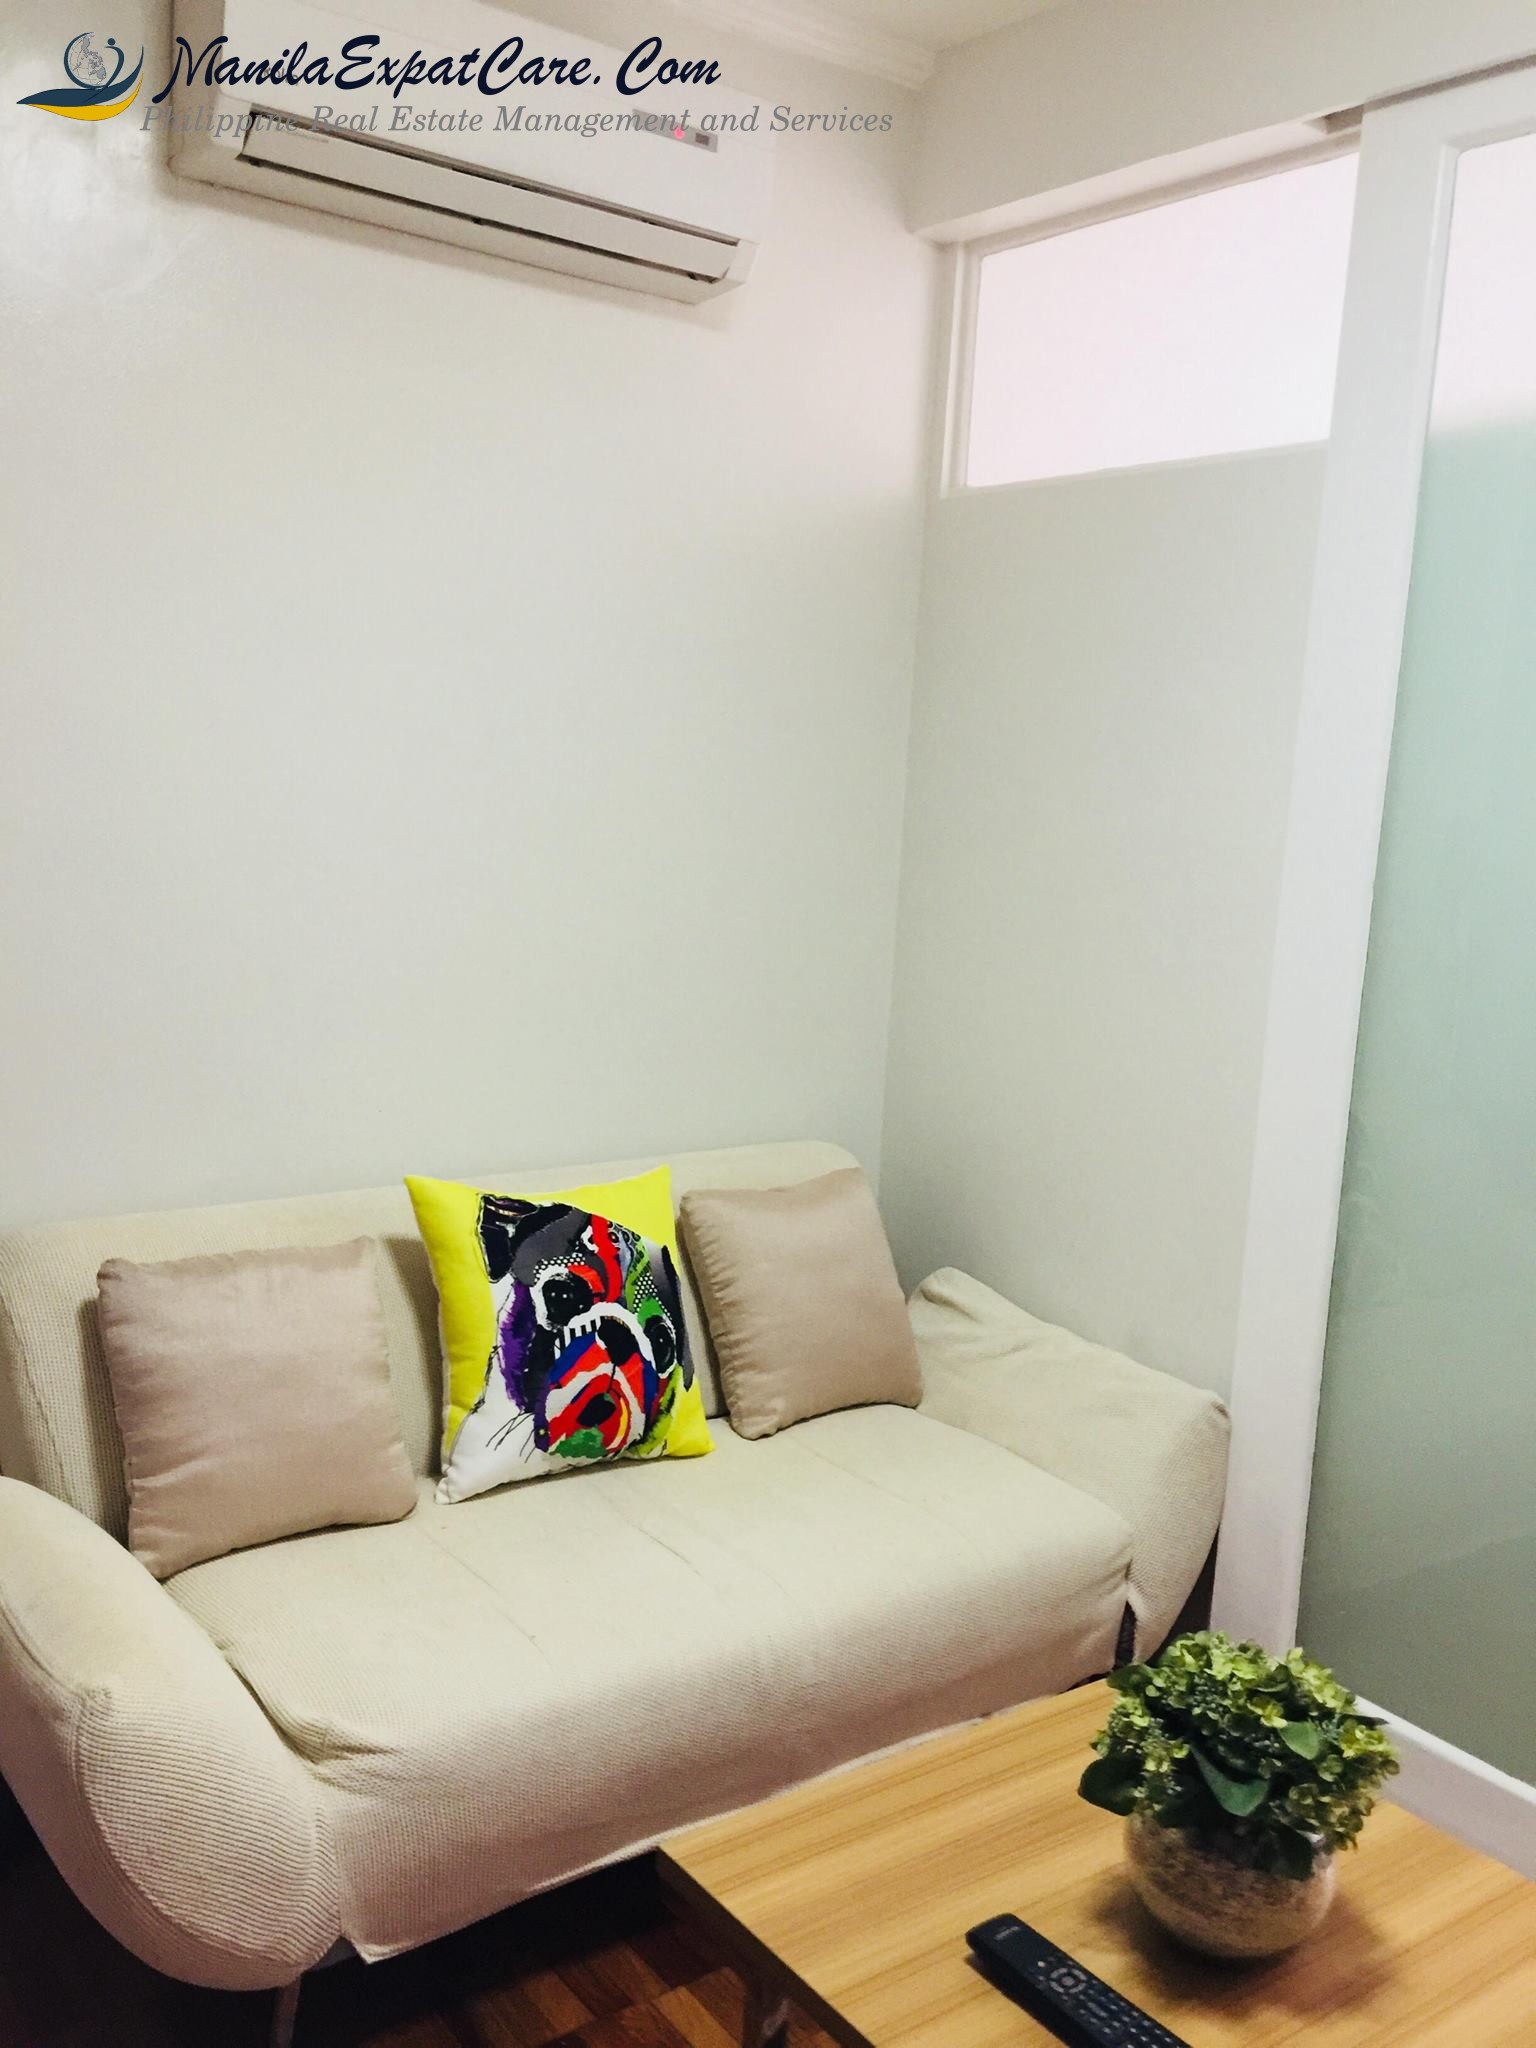 FOR RENT: 1 BR UNIT at CLASSICA ONE BEDROOM CONDO